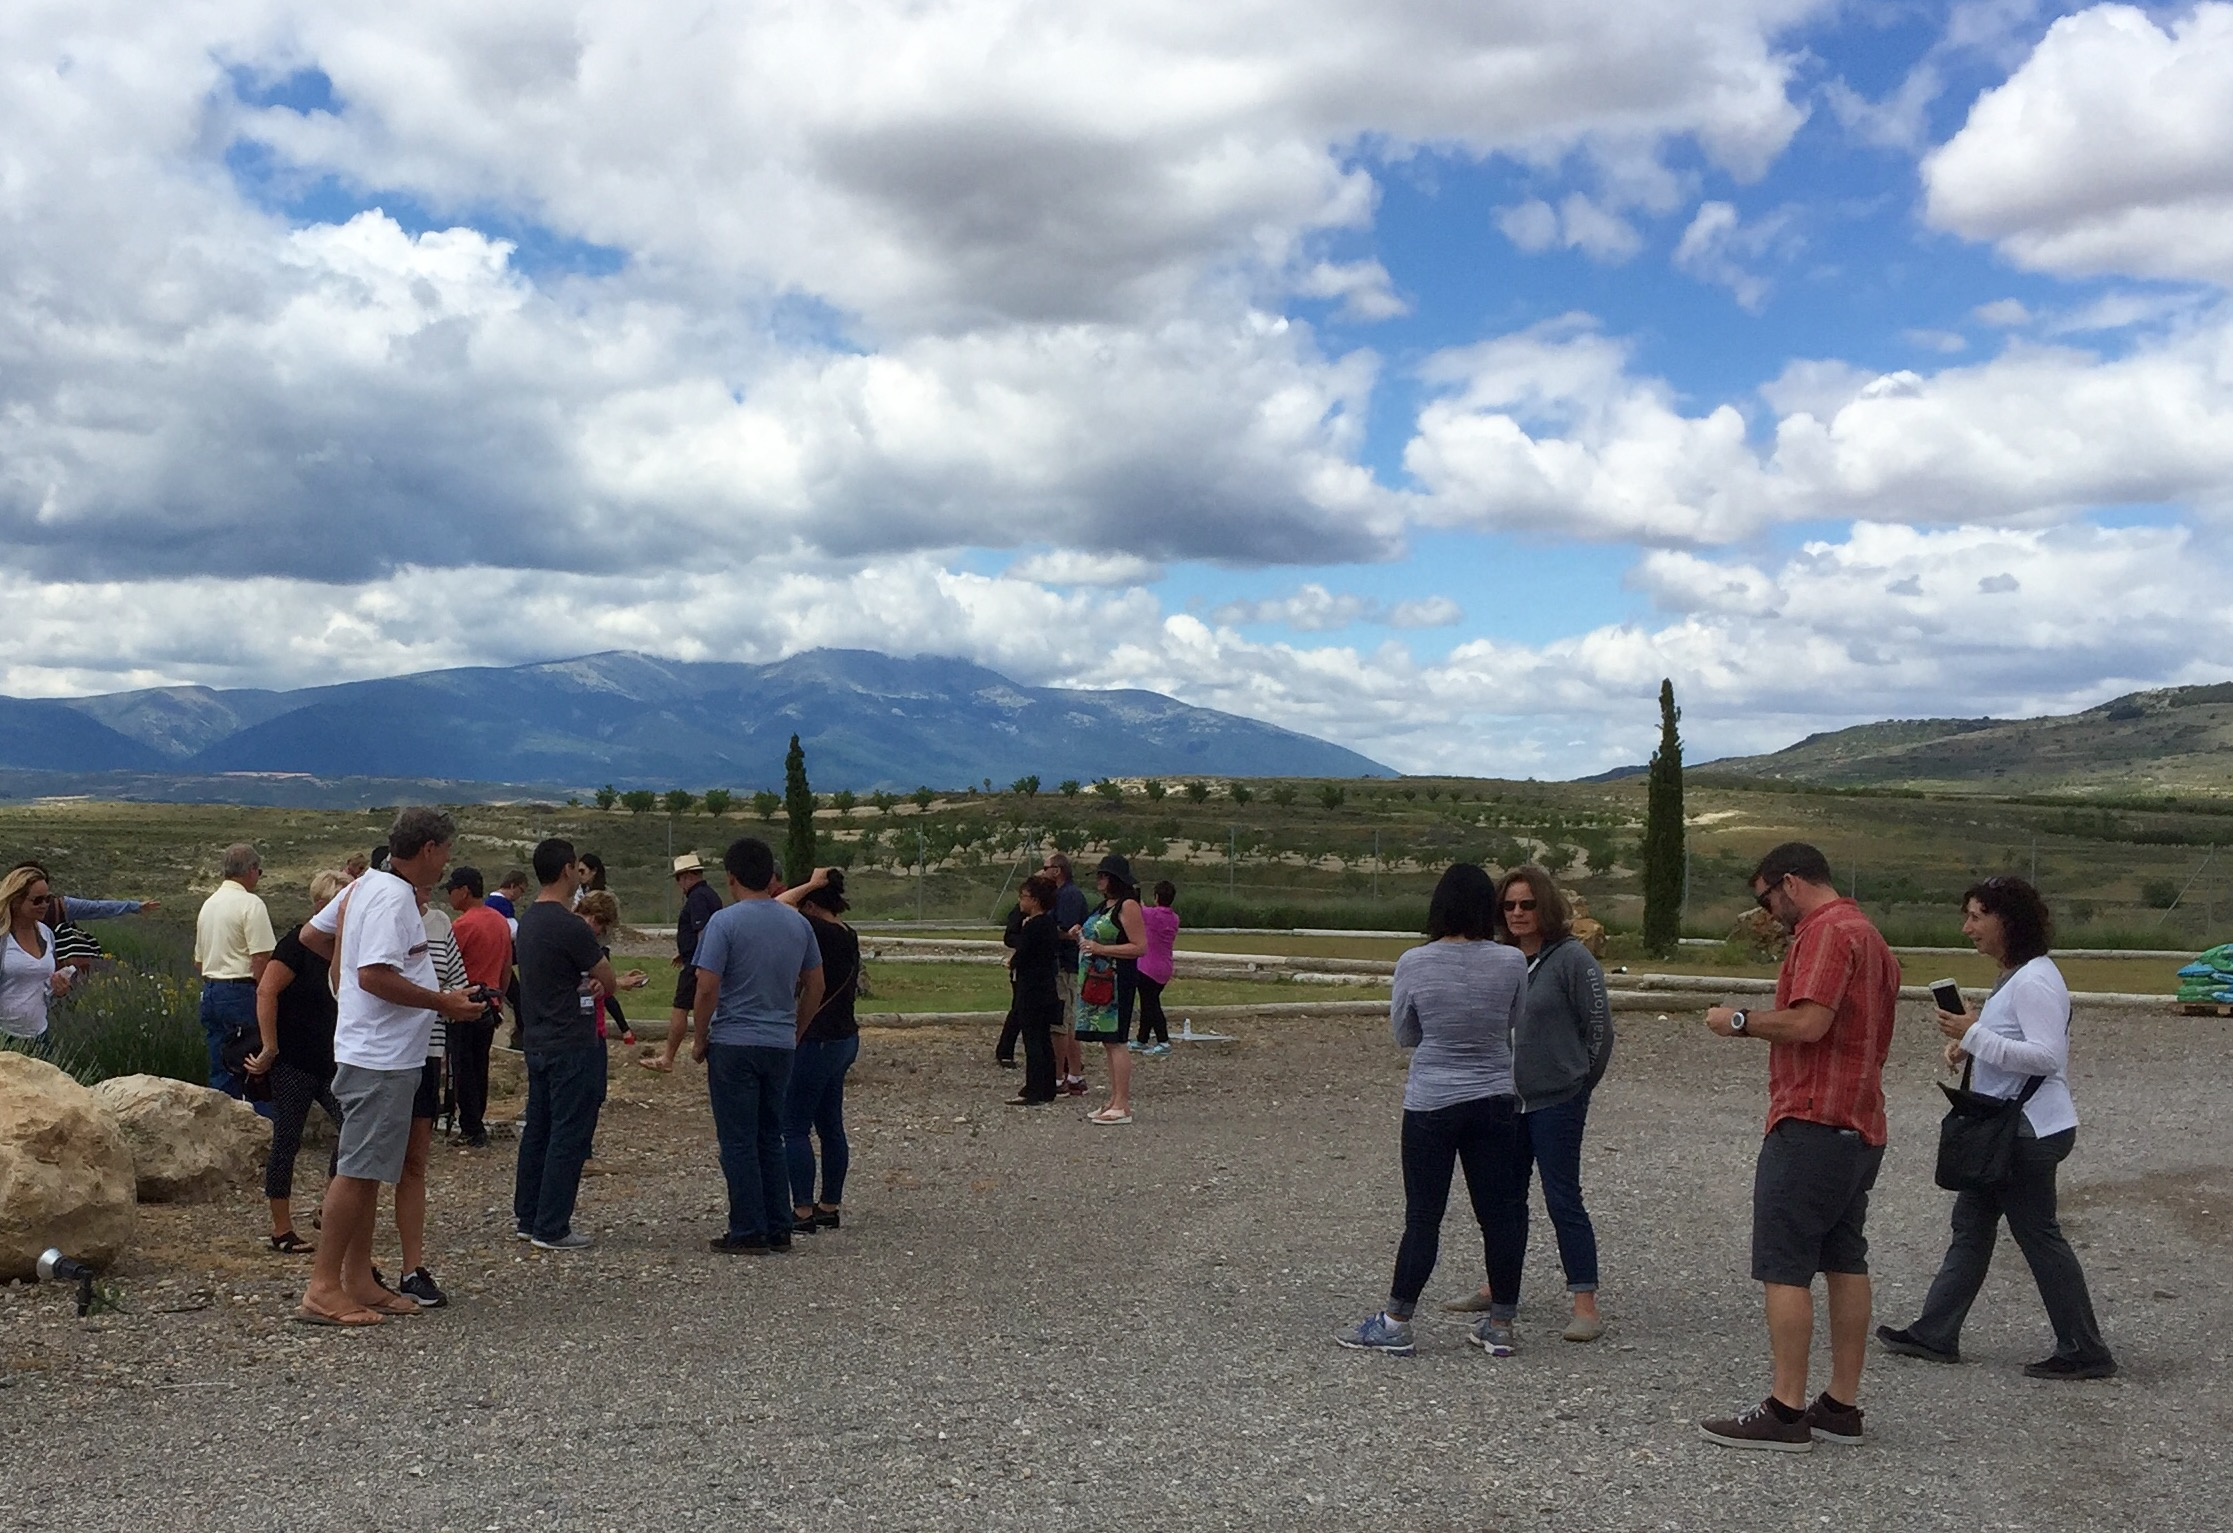 """At Alto Moncayo Winery in Campo Borja with """"Tres Picos"""" (the three peaks of Moncayo Mountain and also the namesake of the famous Borsao Garnacha) in the background."""